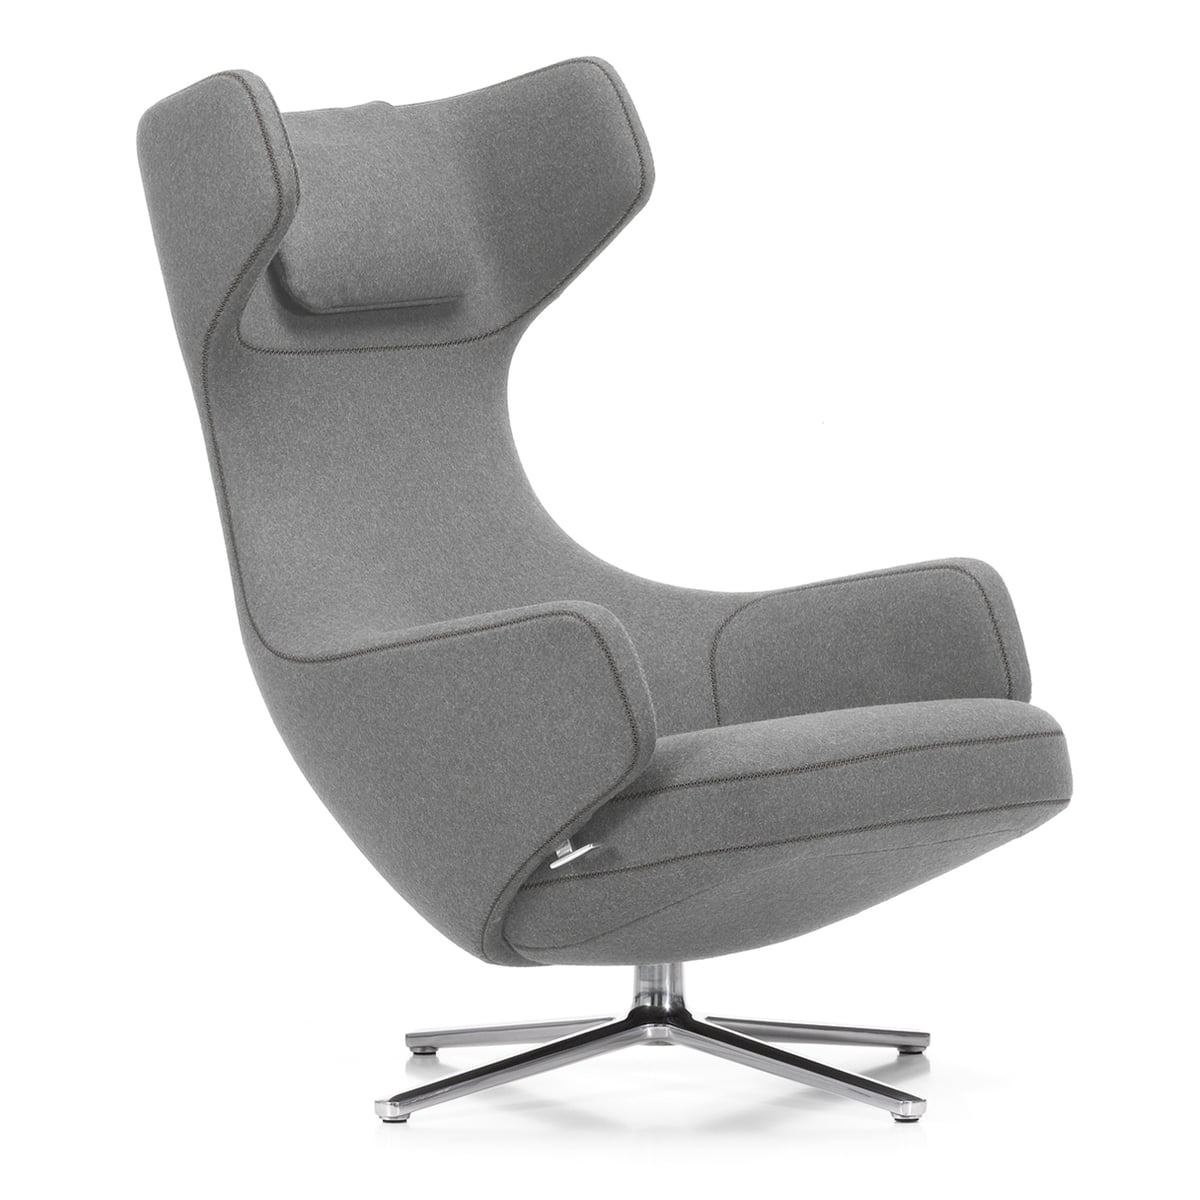 Grand repos sessel von vitra connox for Ohrensessel drehbar